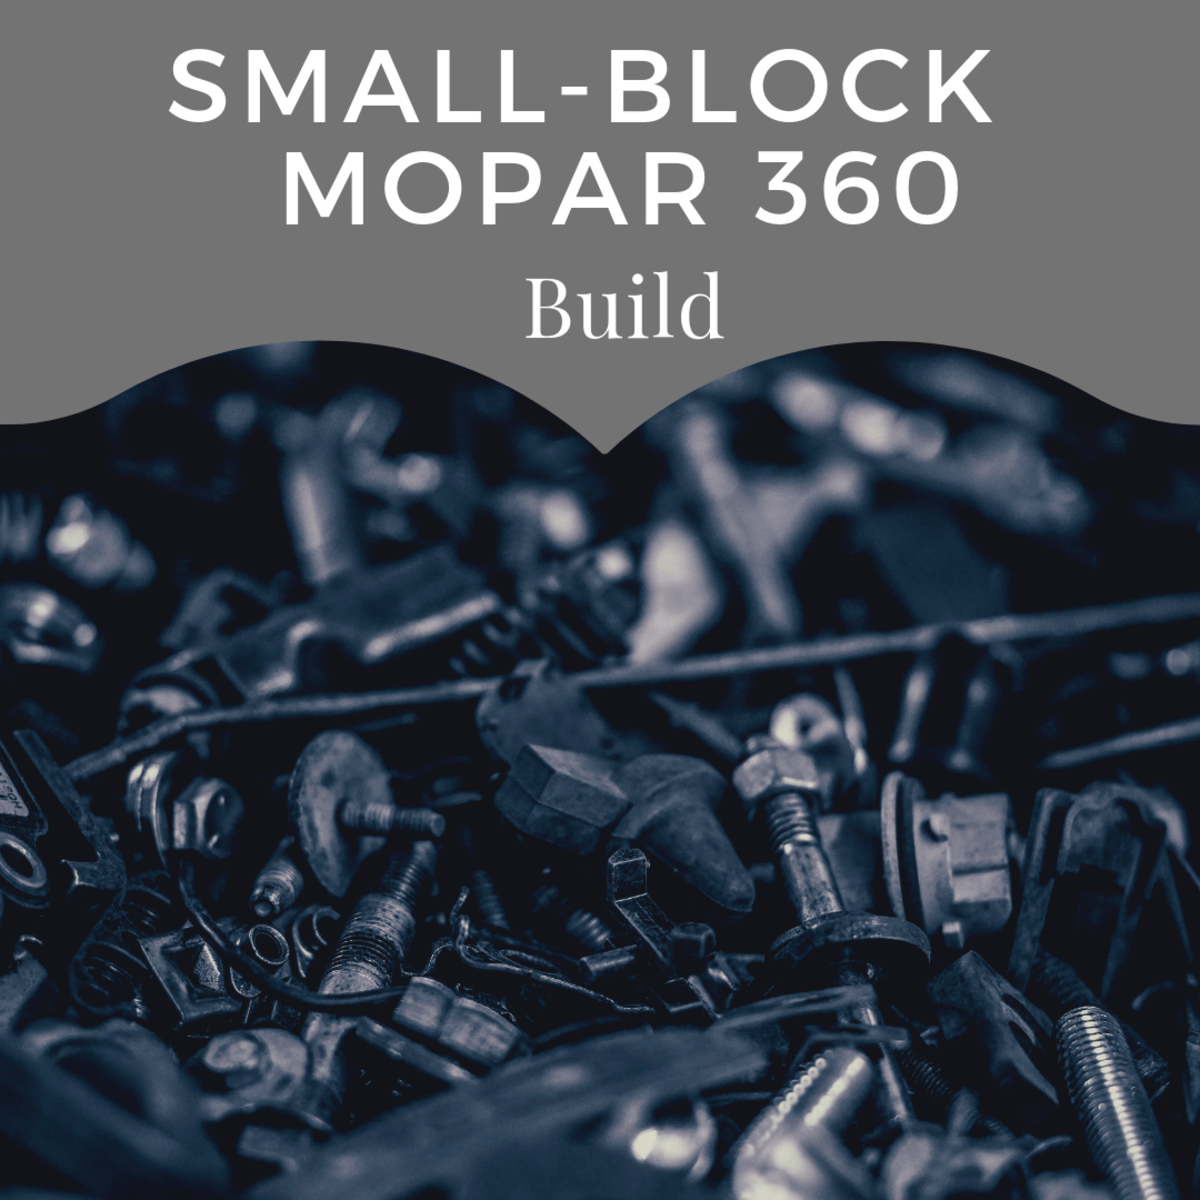 Build a Hot-Running Mopar 360 for Street and Strip